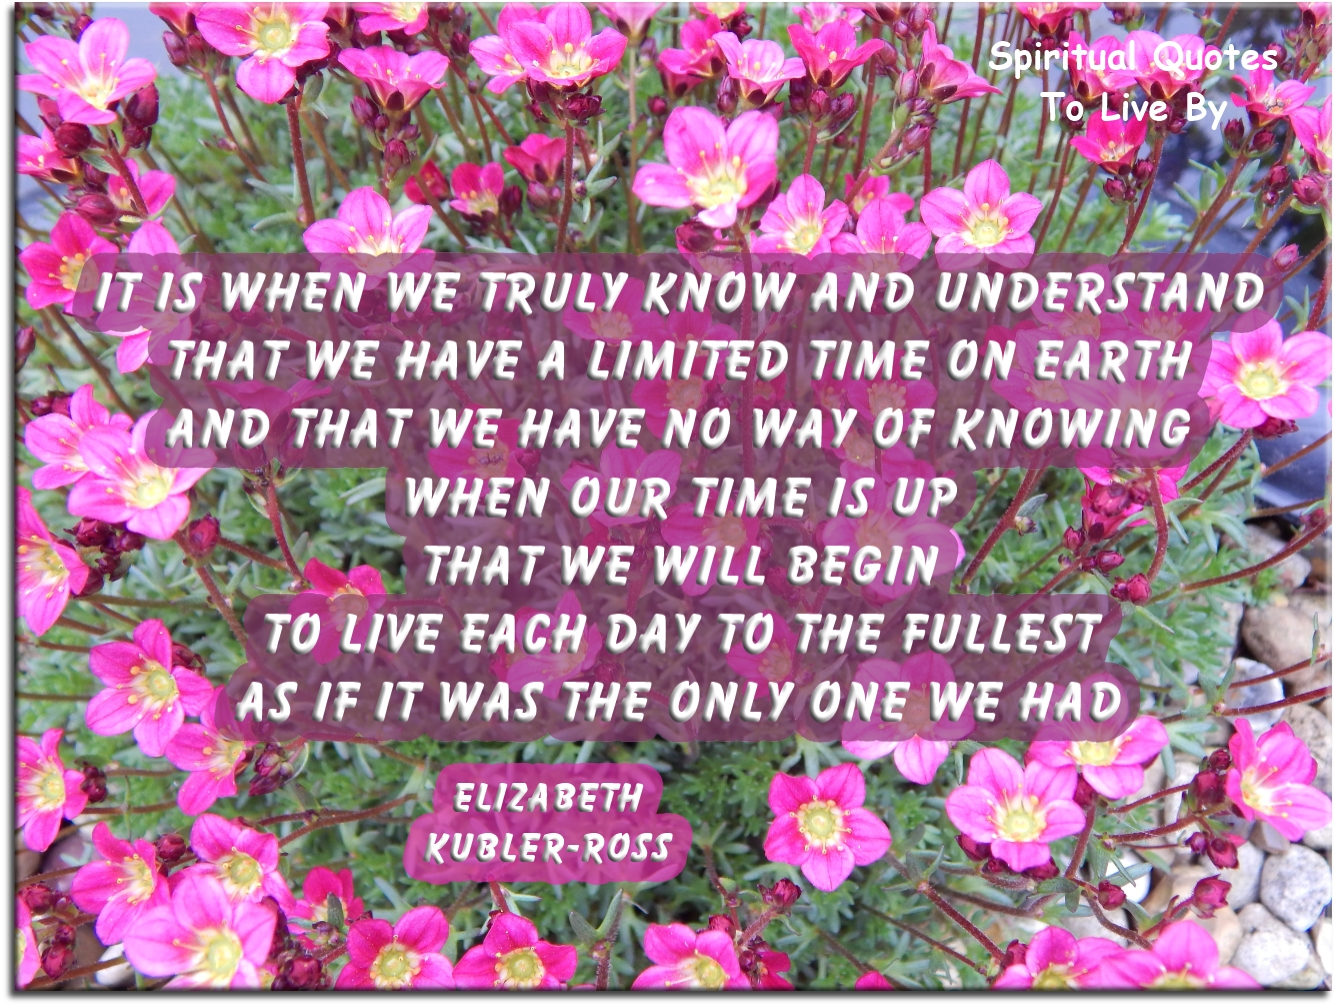 Elizabeth Kubler-Ross quote: It is when we truly know and understand that we have a limited time on Earth.. - Spiritual Quotes To Live By